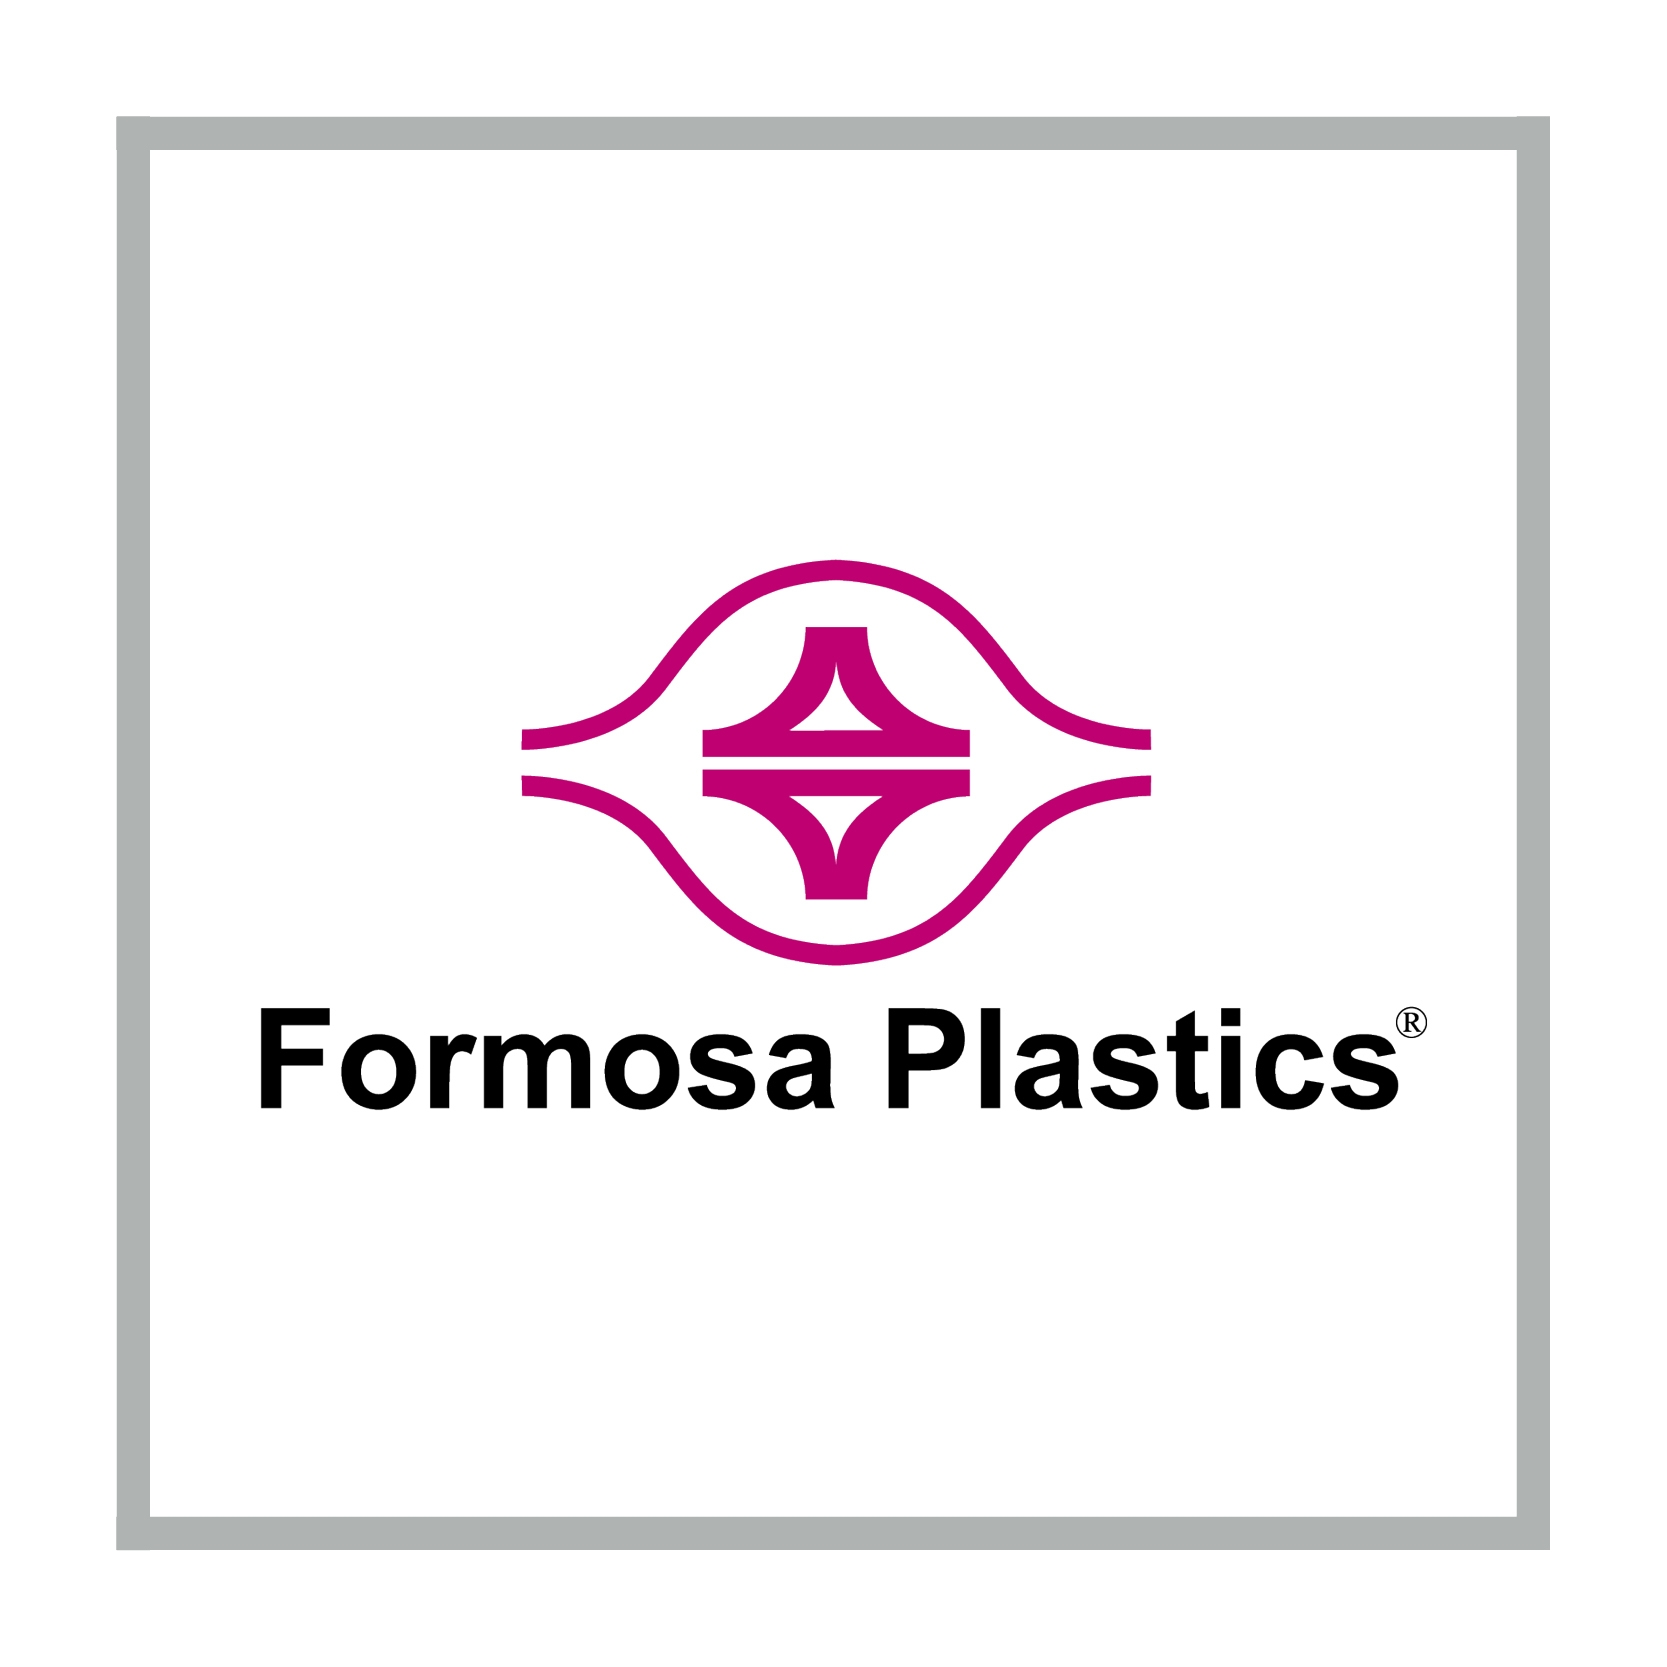 About Formosa